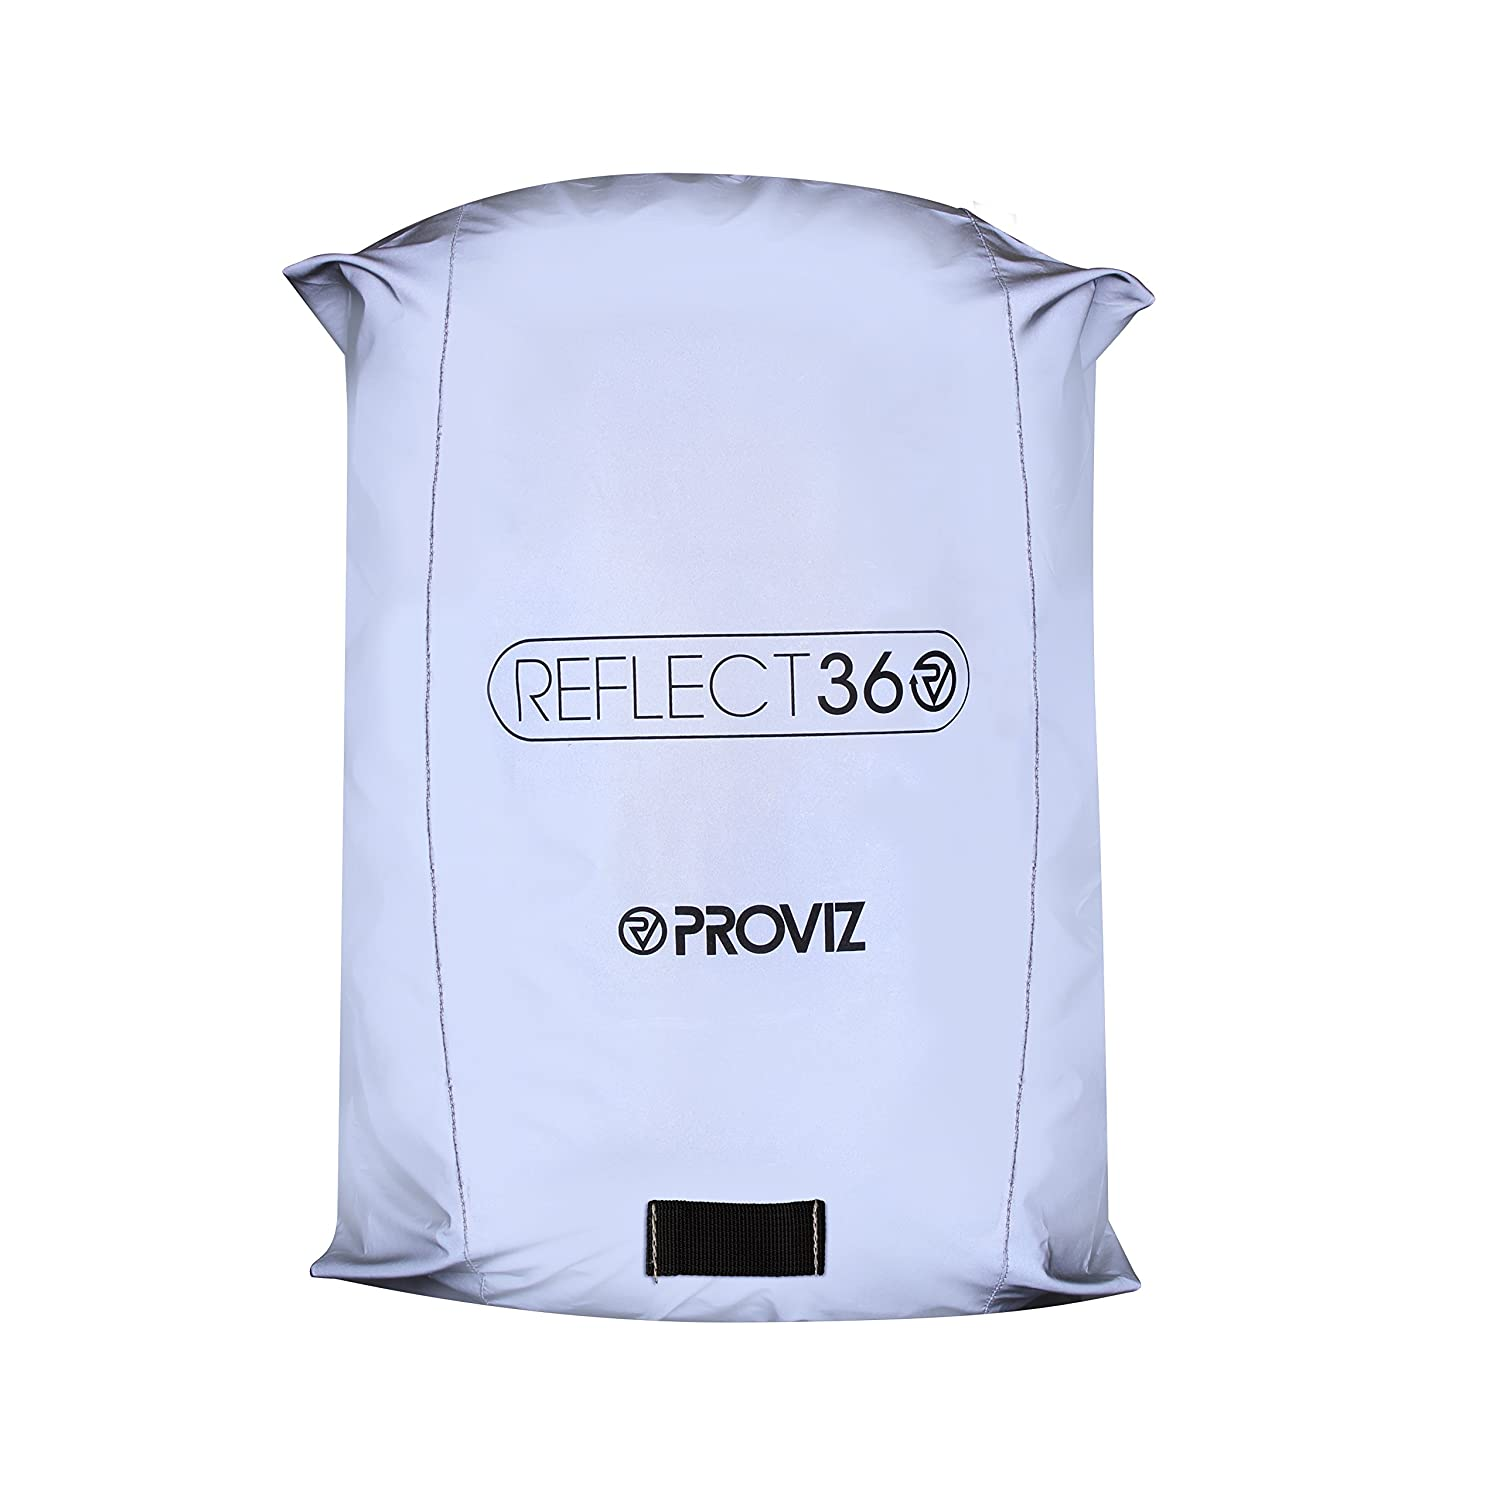 Proviz Reflect 360 Waterproof Ruck Sack Cover 35 Litres PVR360BC